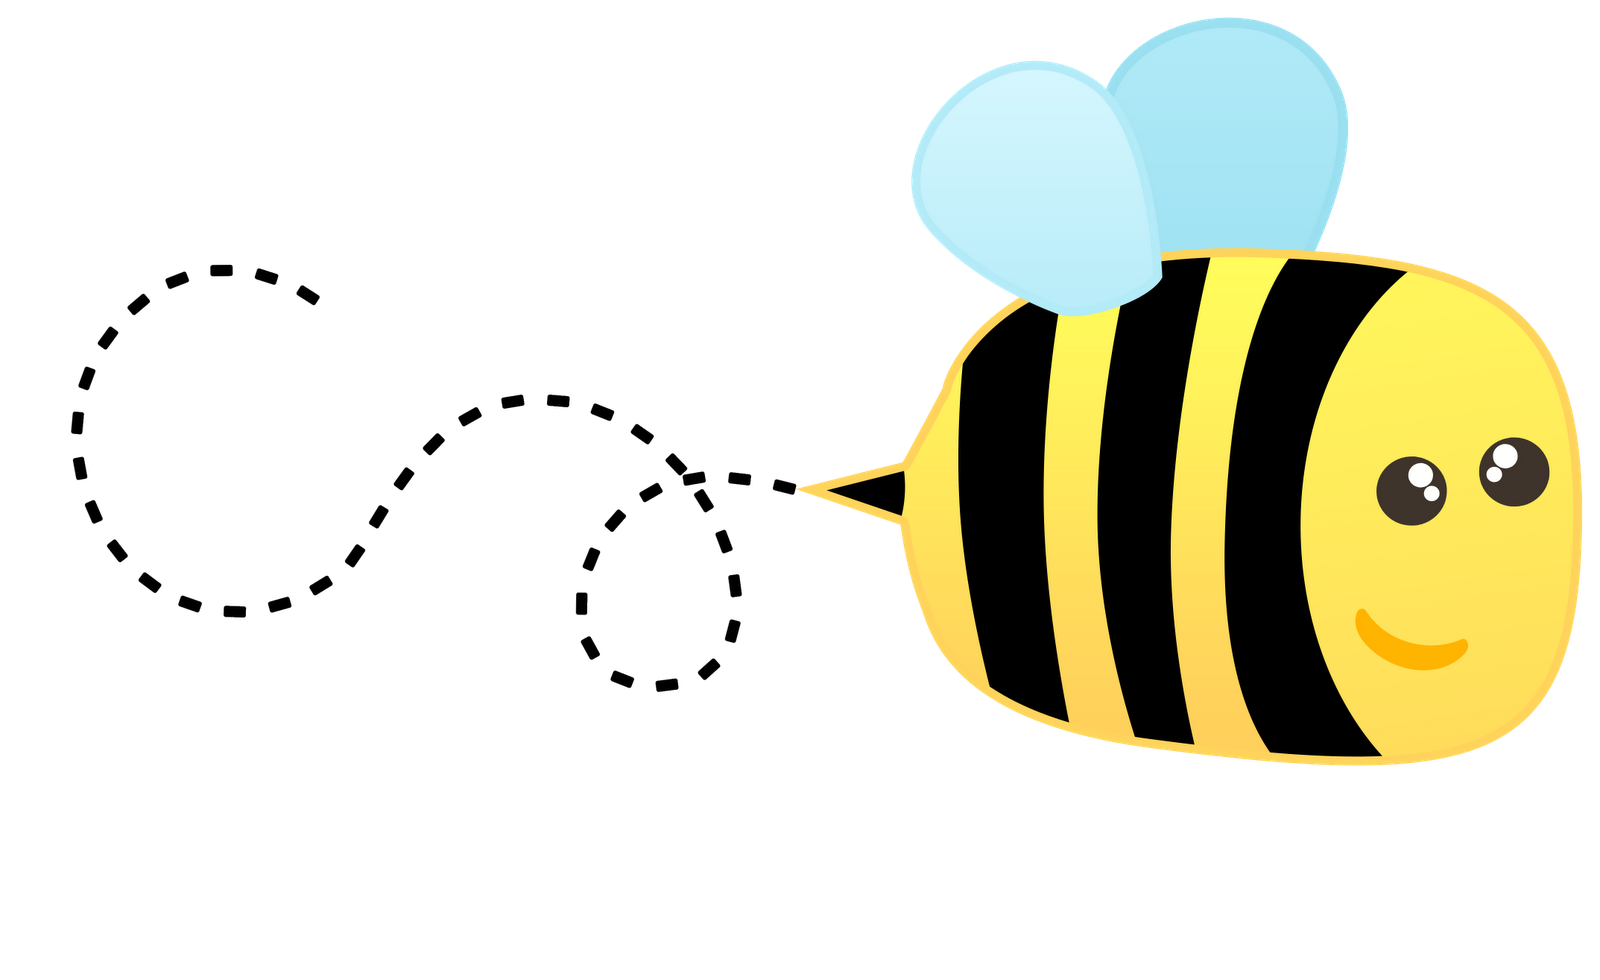 August clipart bumble bee. Guest blogger tuesday featuring